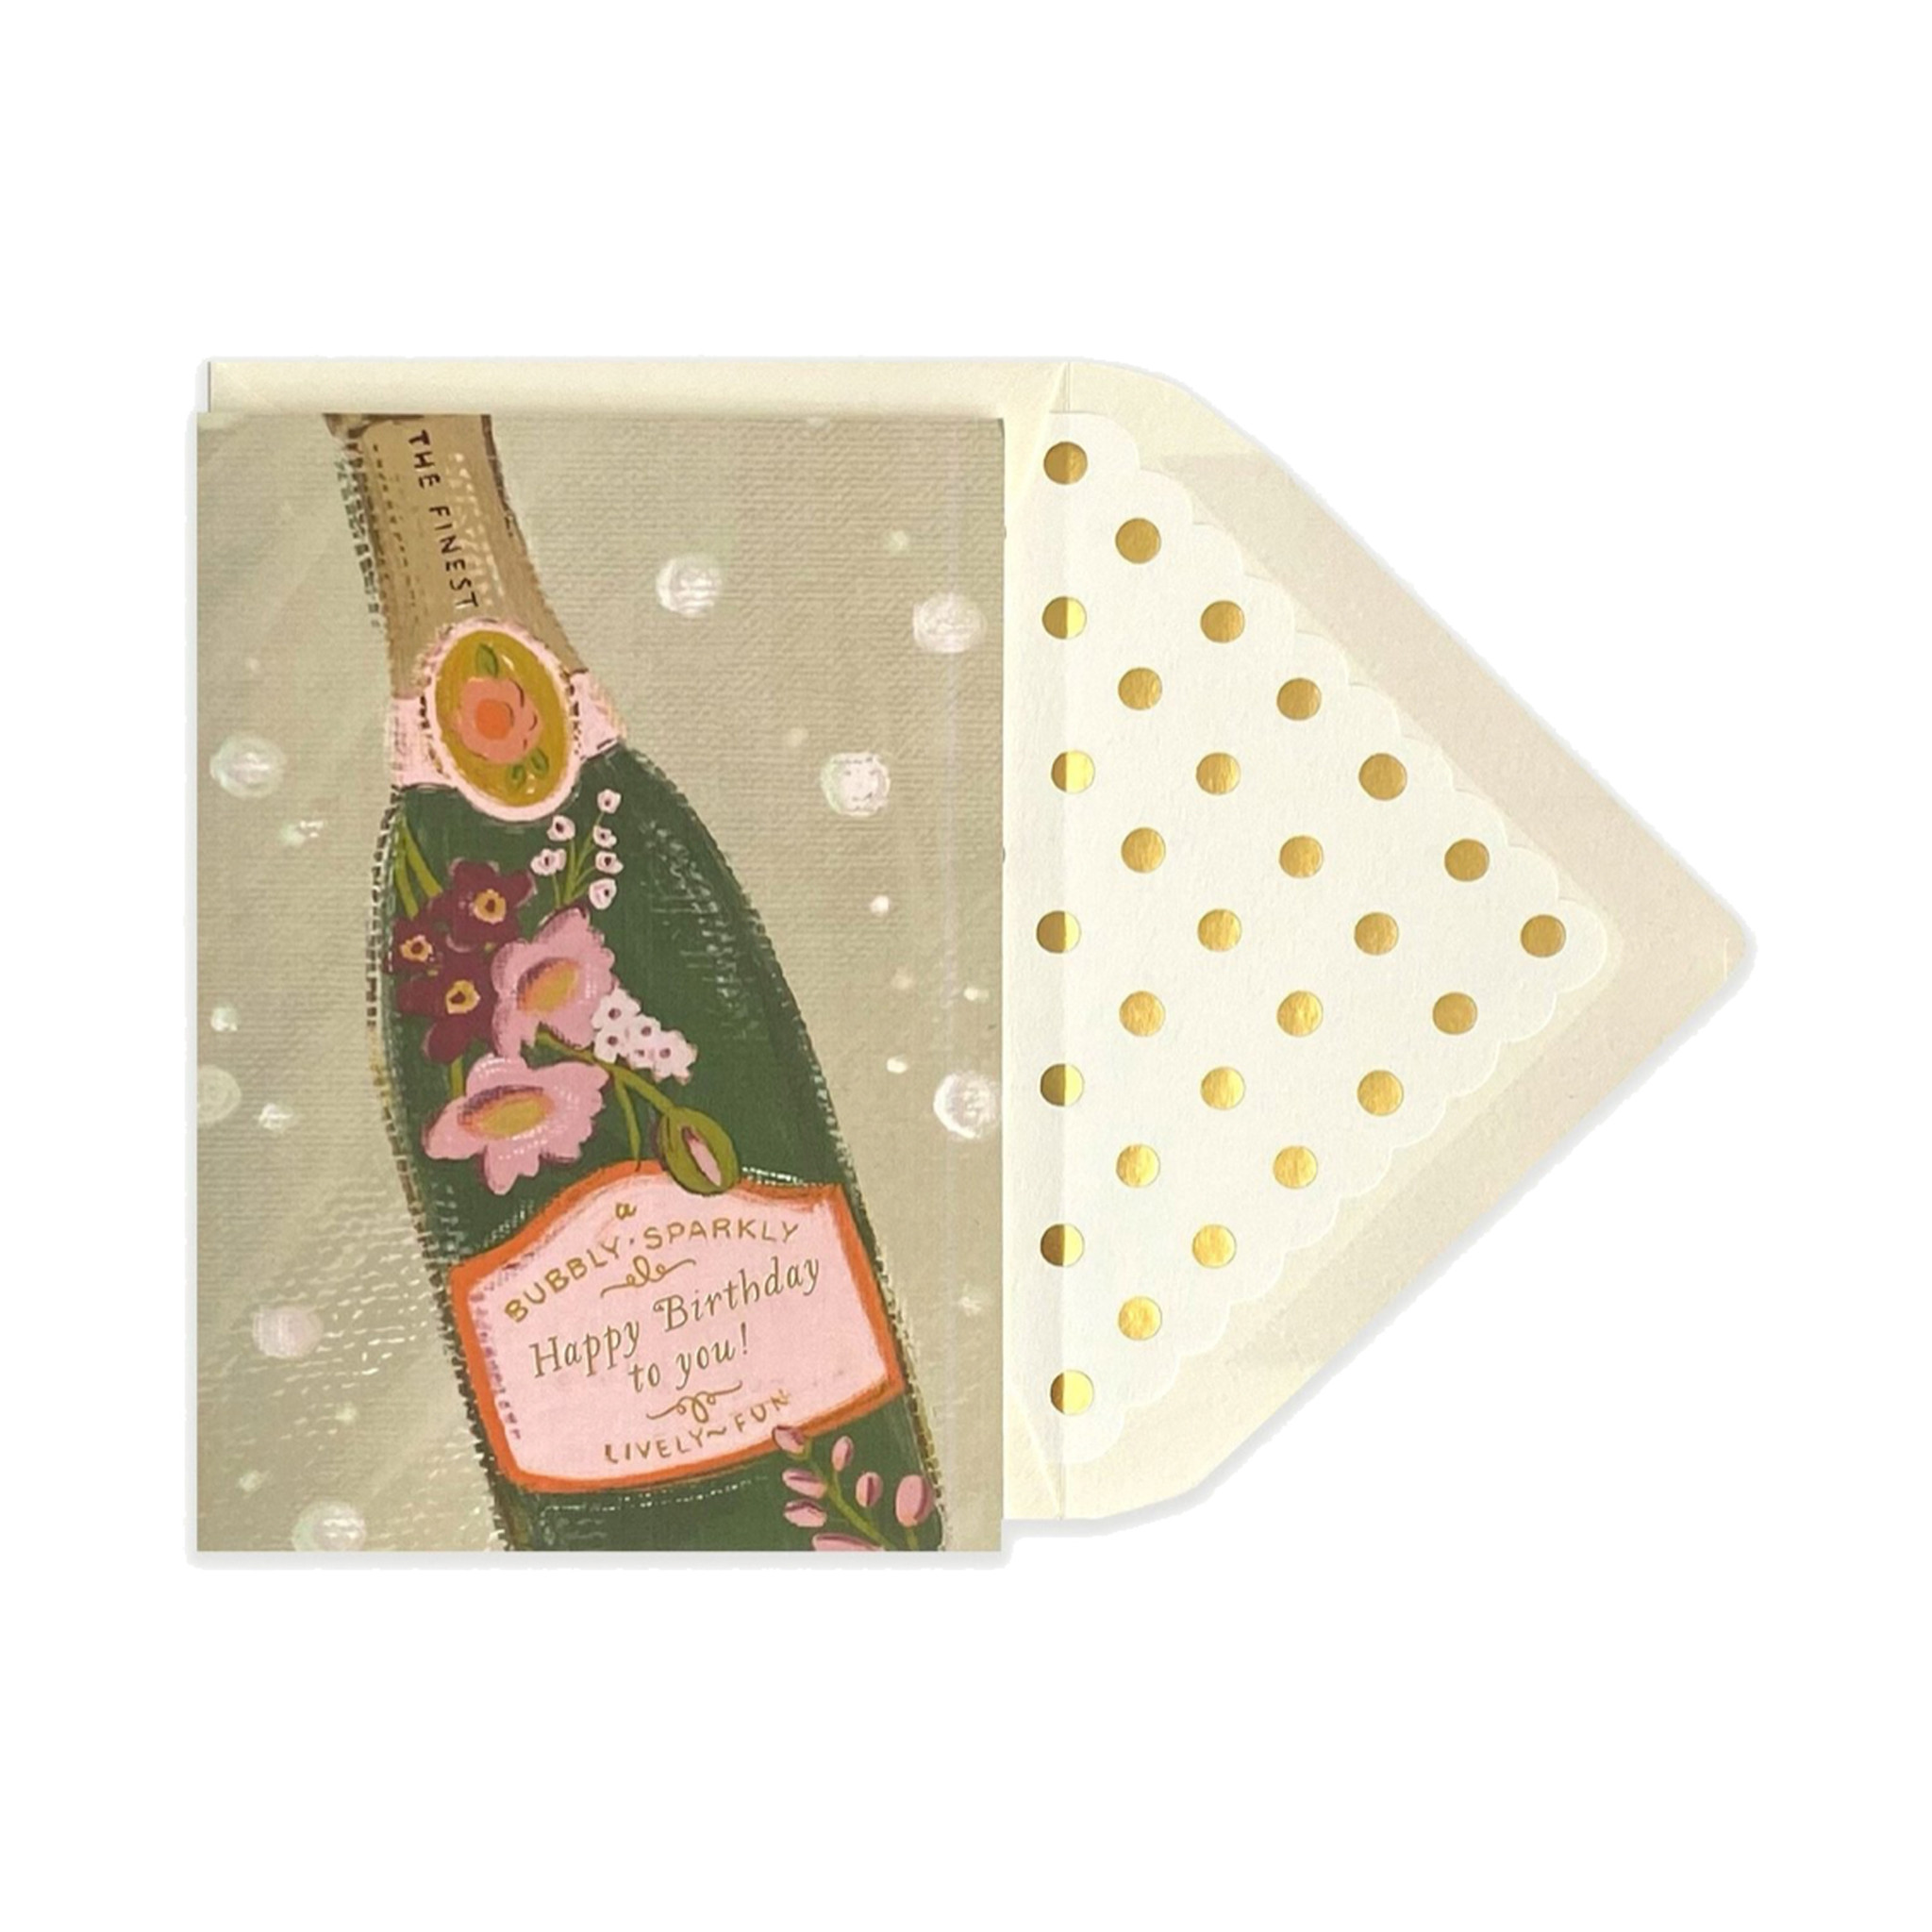 The First Snow - FIS Bubbly Sparkly Happy Birthday Card